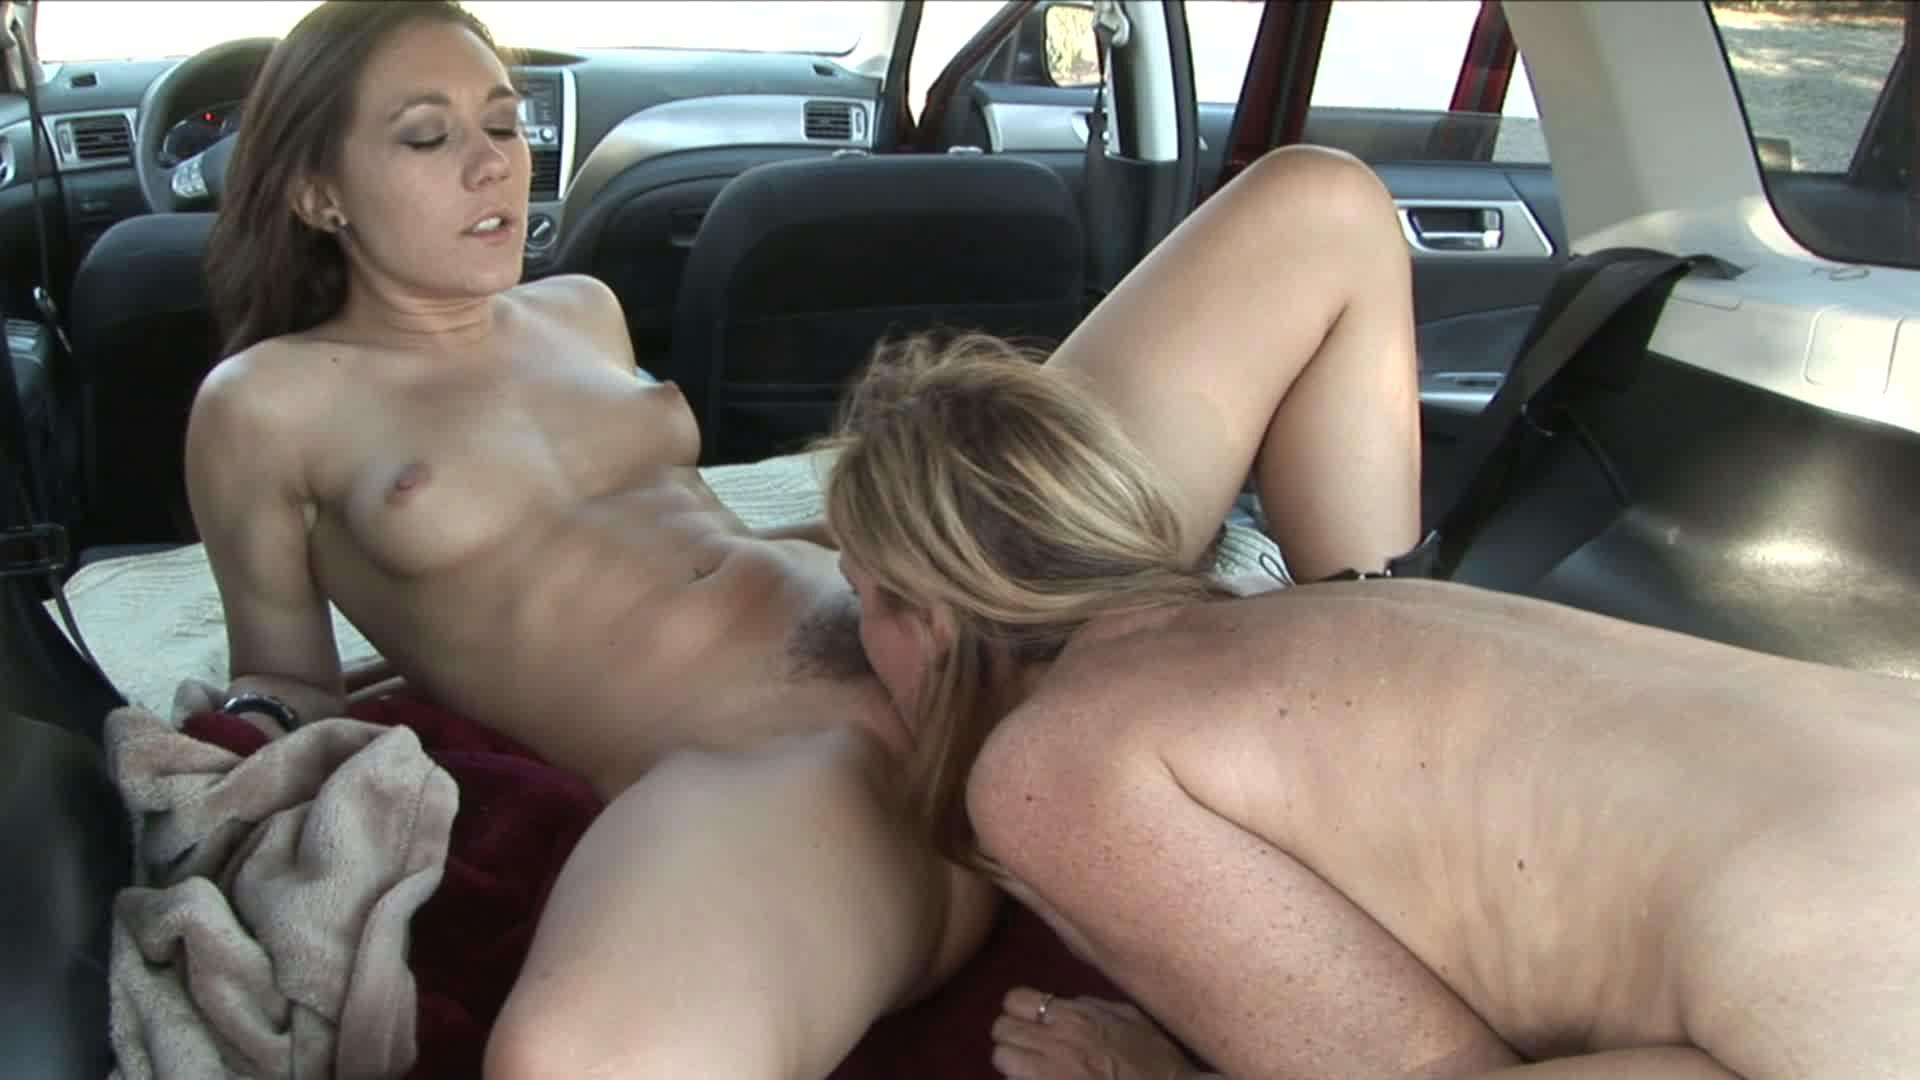 Xxx hitchhiker girl sex assured, that